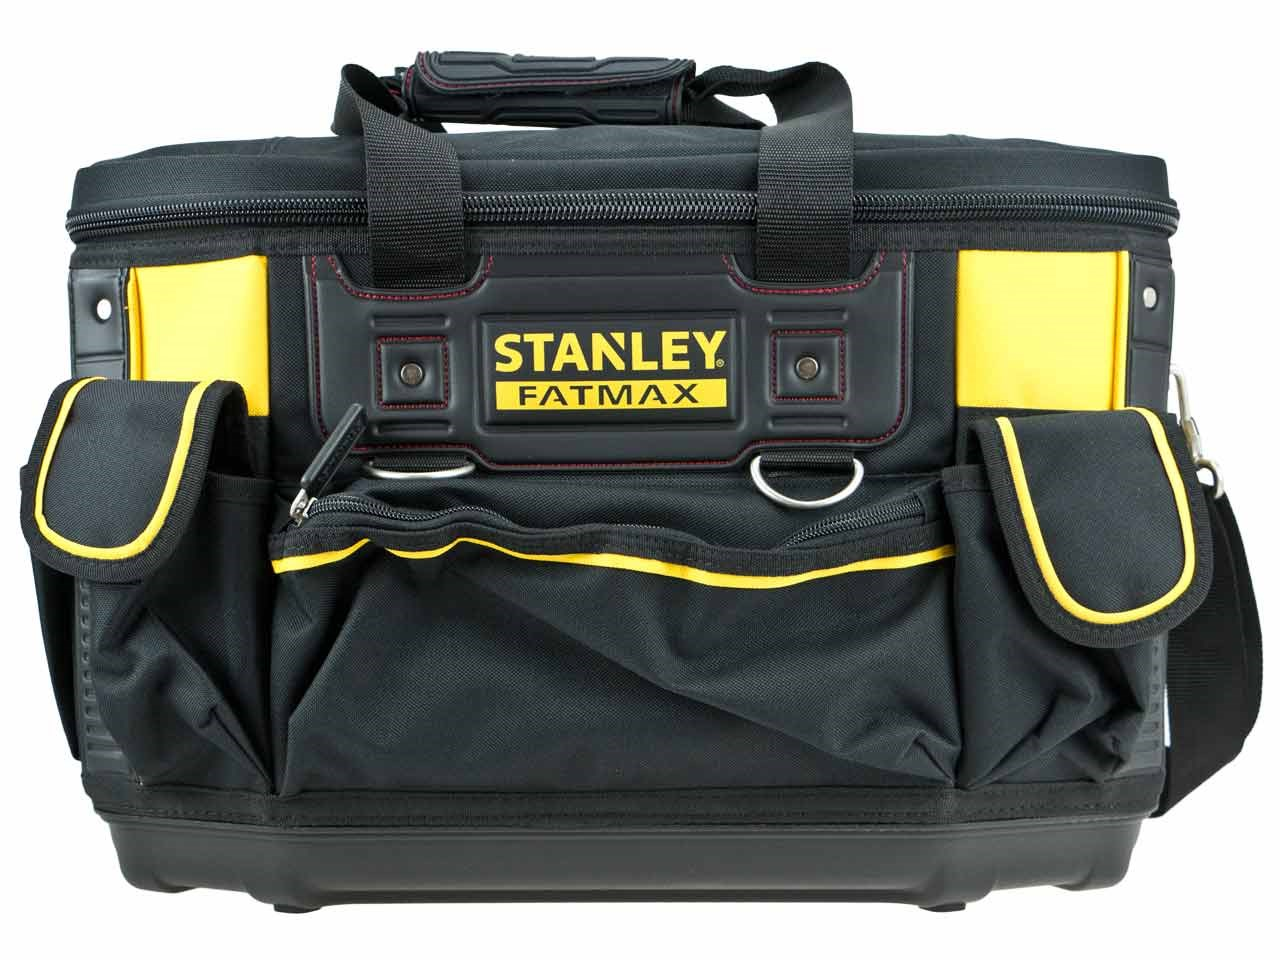 Stanley fmst1 70749 fatmax rigid top tool bag